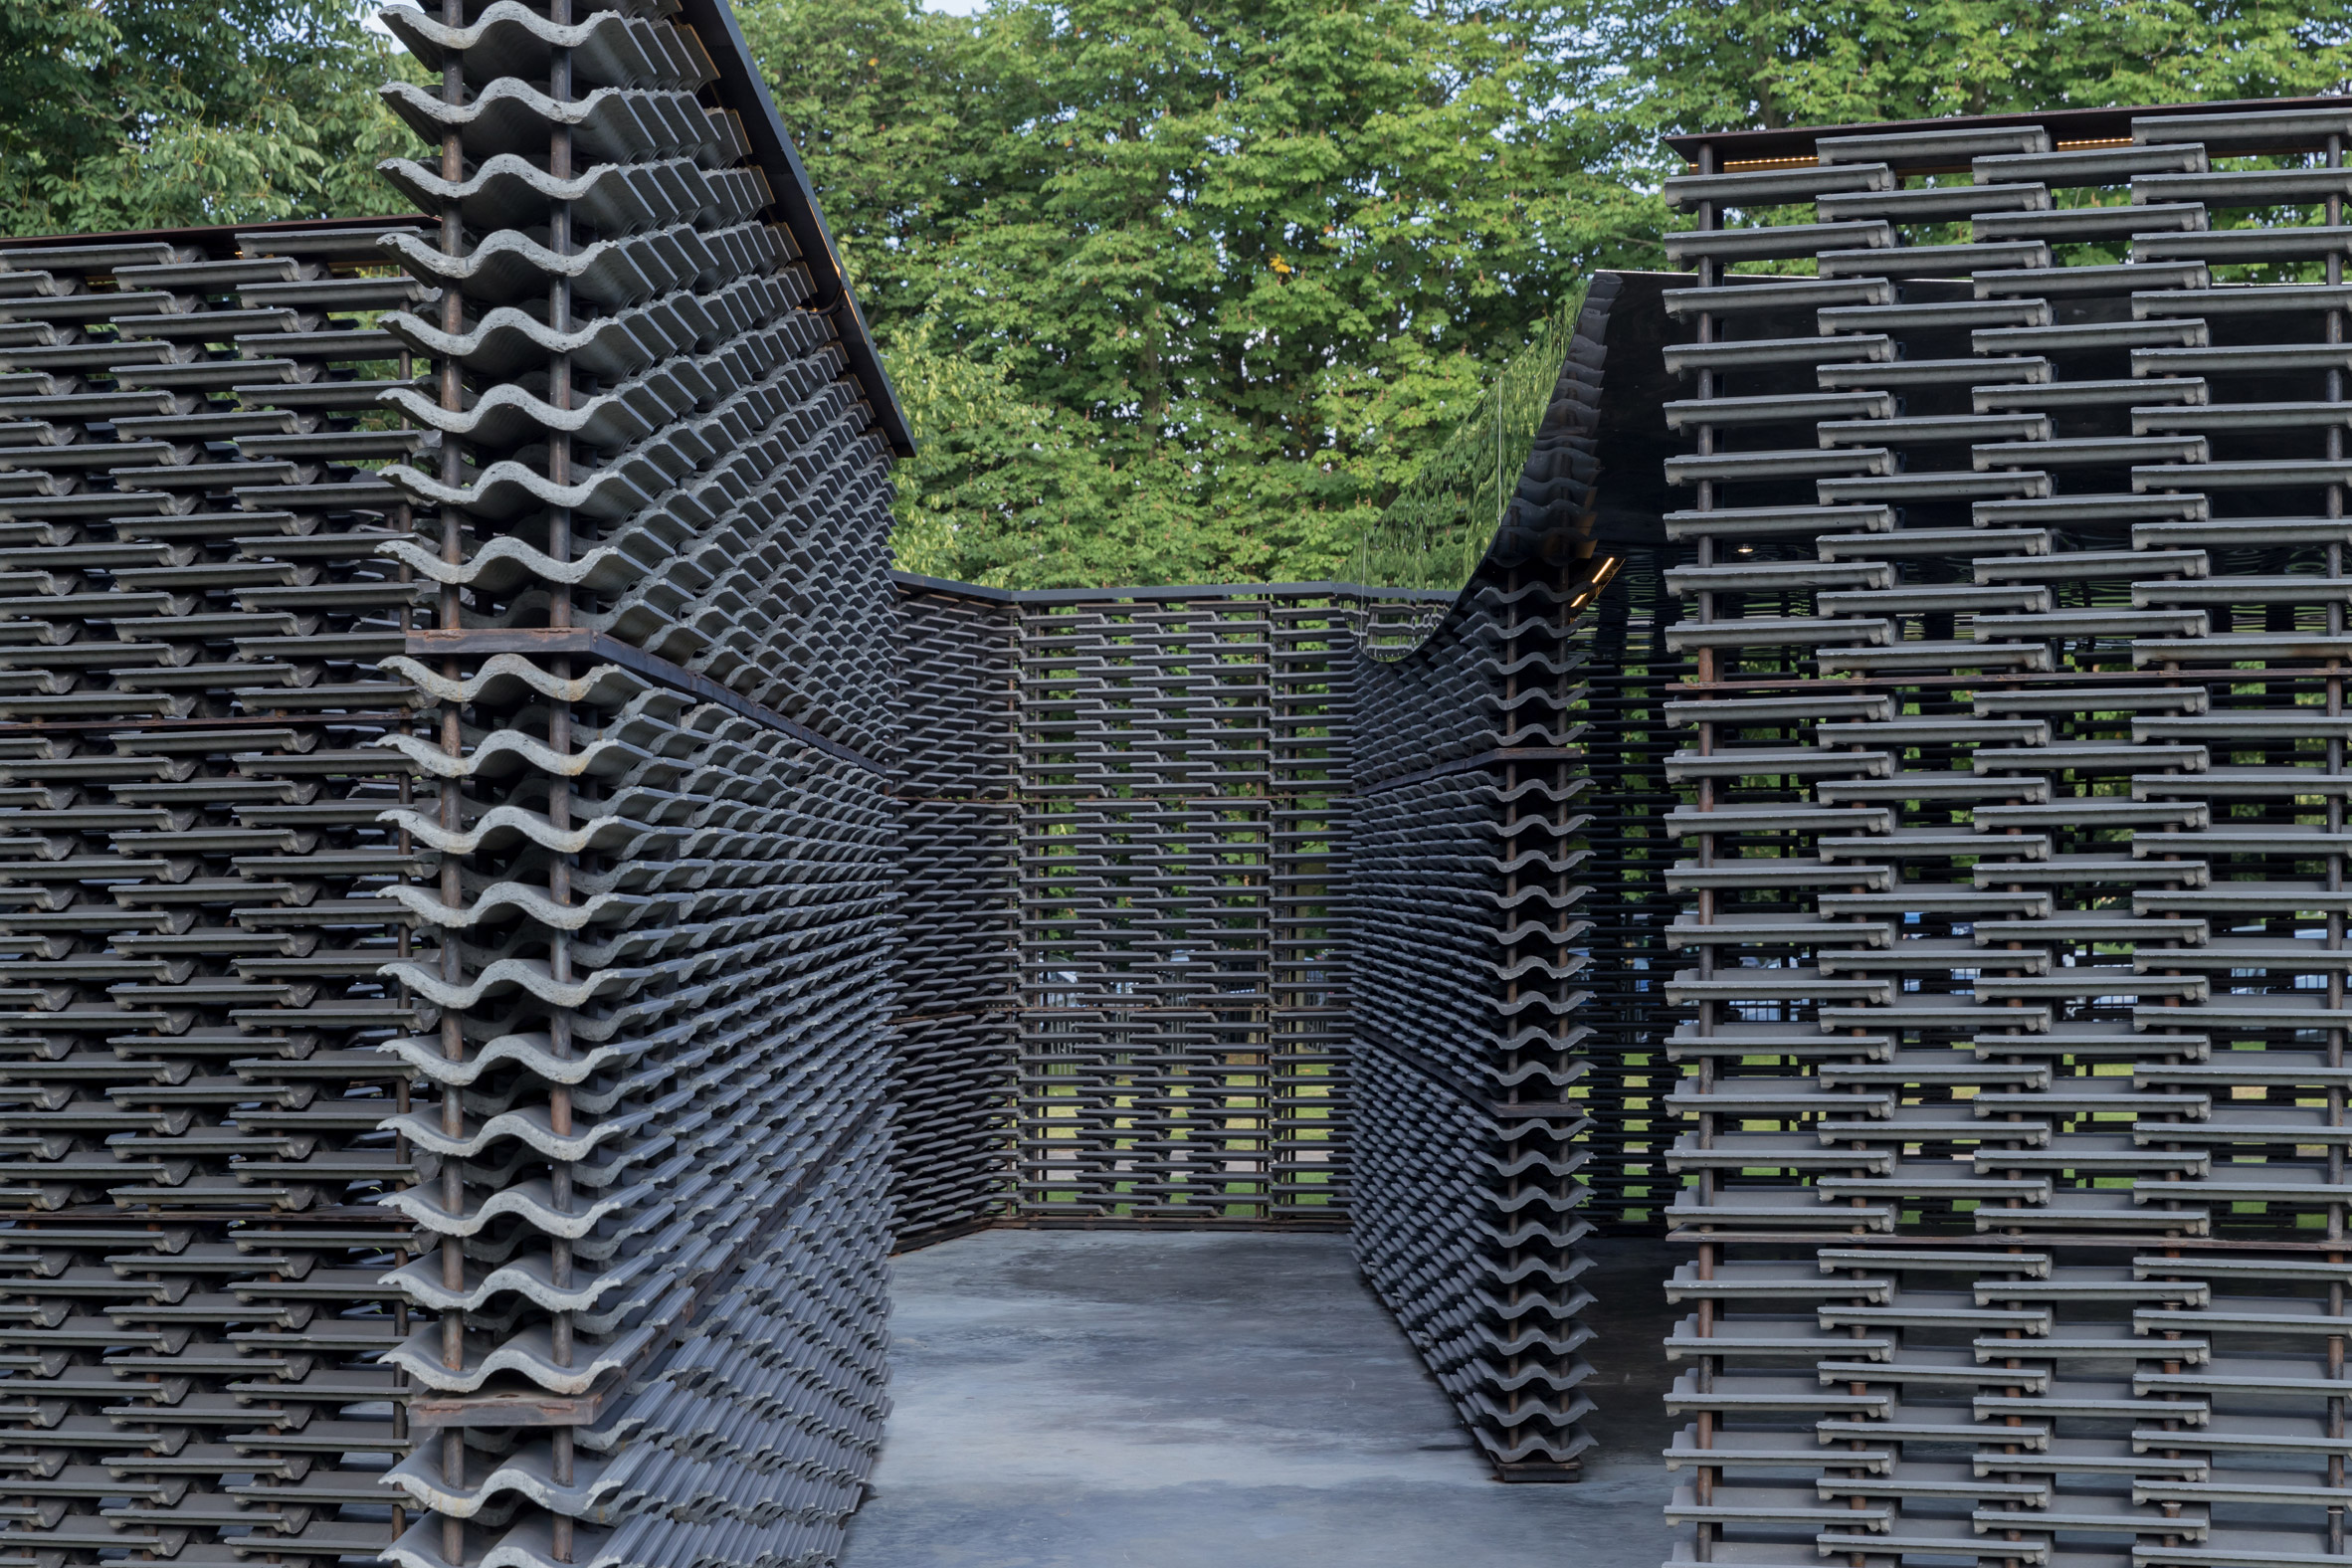 """Frida Escobedo builds Serpentine Pavilion featuring """"woven tapestry"""" of concrete tiles"""